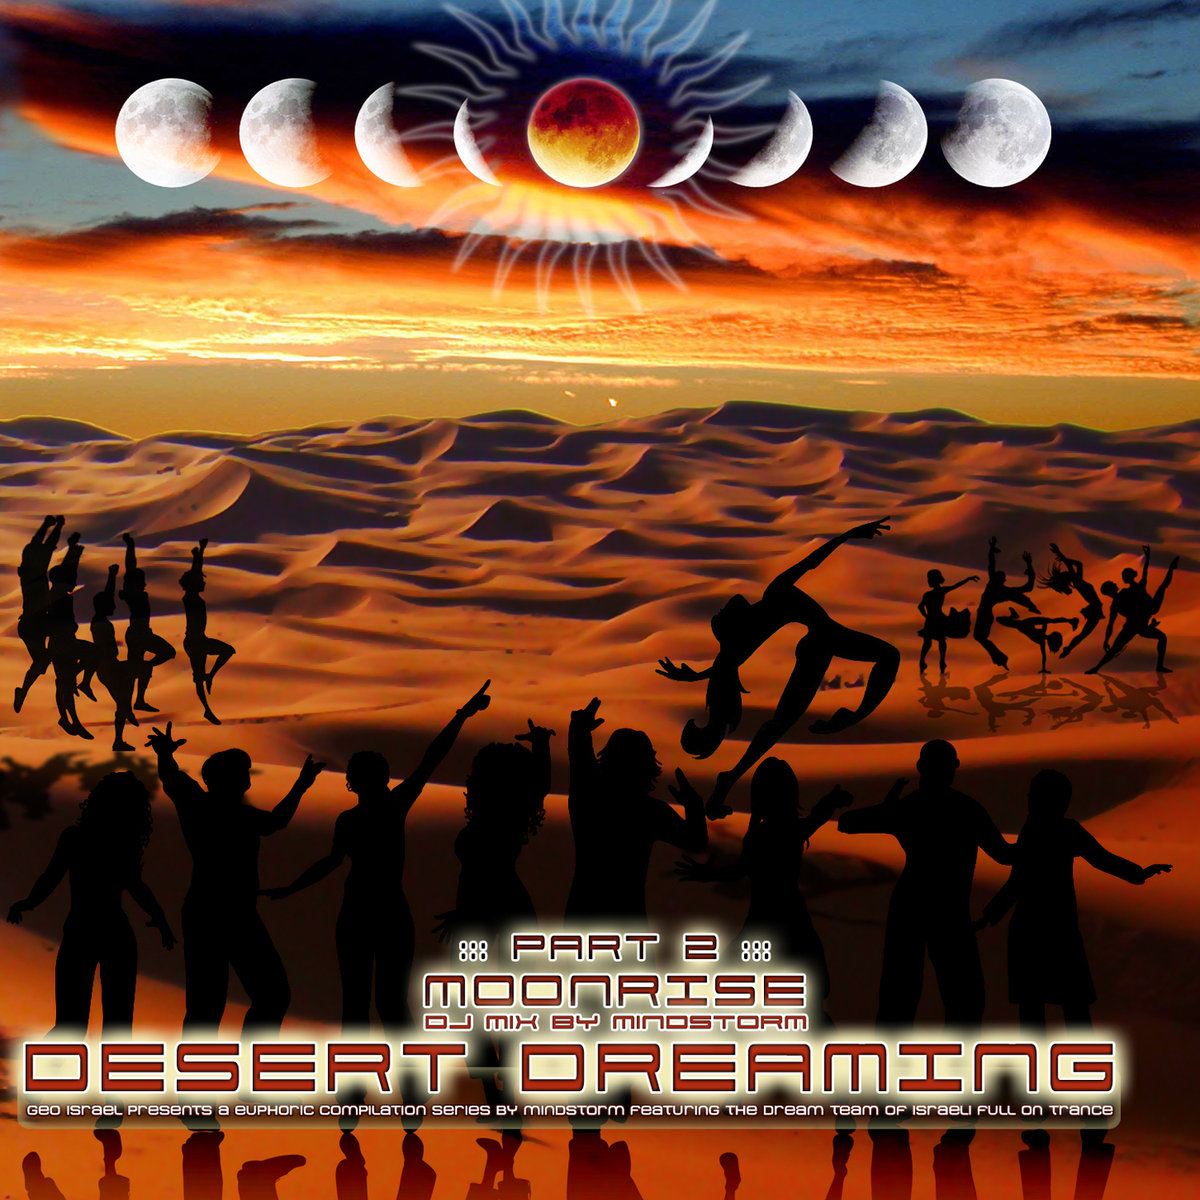 Perplex vs. N3xu5 - In the Future @ 'Various Artists - Desert Dreaming Part 2: Moonrise (DJ Mix by Mindstorm)' album (electronic, goa)